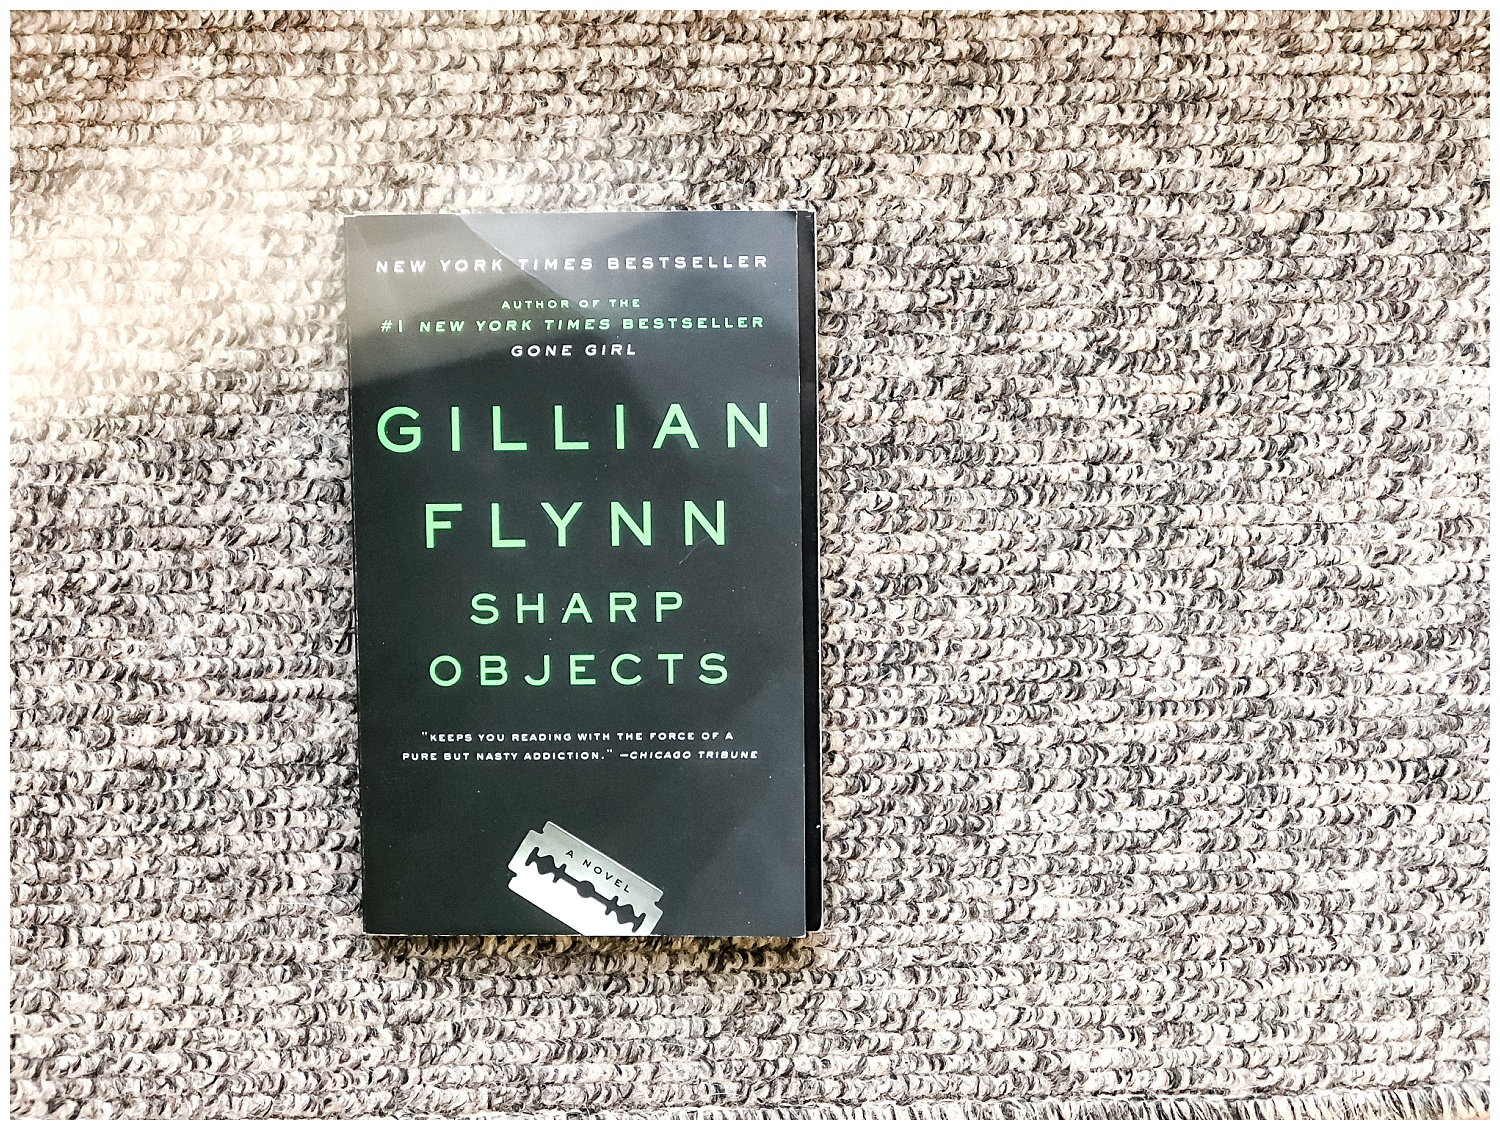 Sharp-Objects-Book-Review-2018-elizabeth-ladean-photography-photo-_6698.jpg